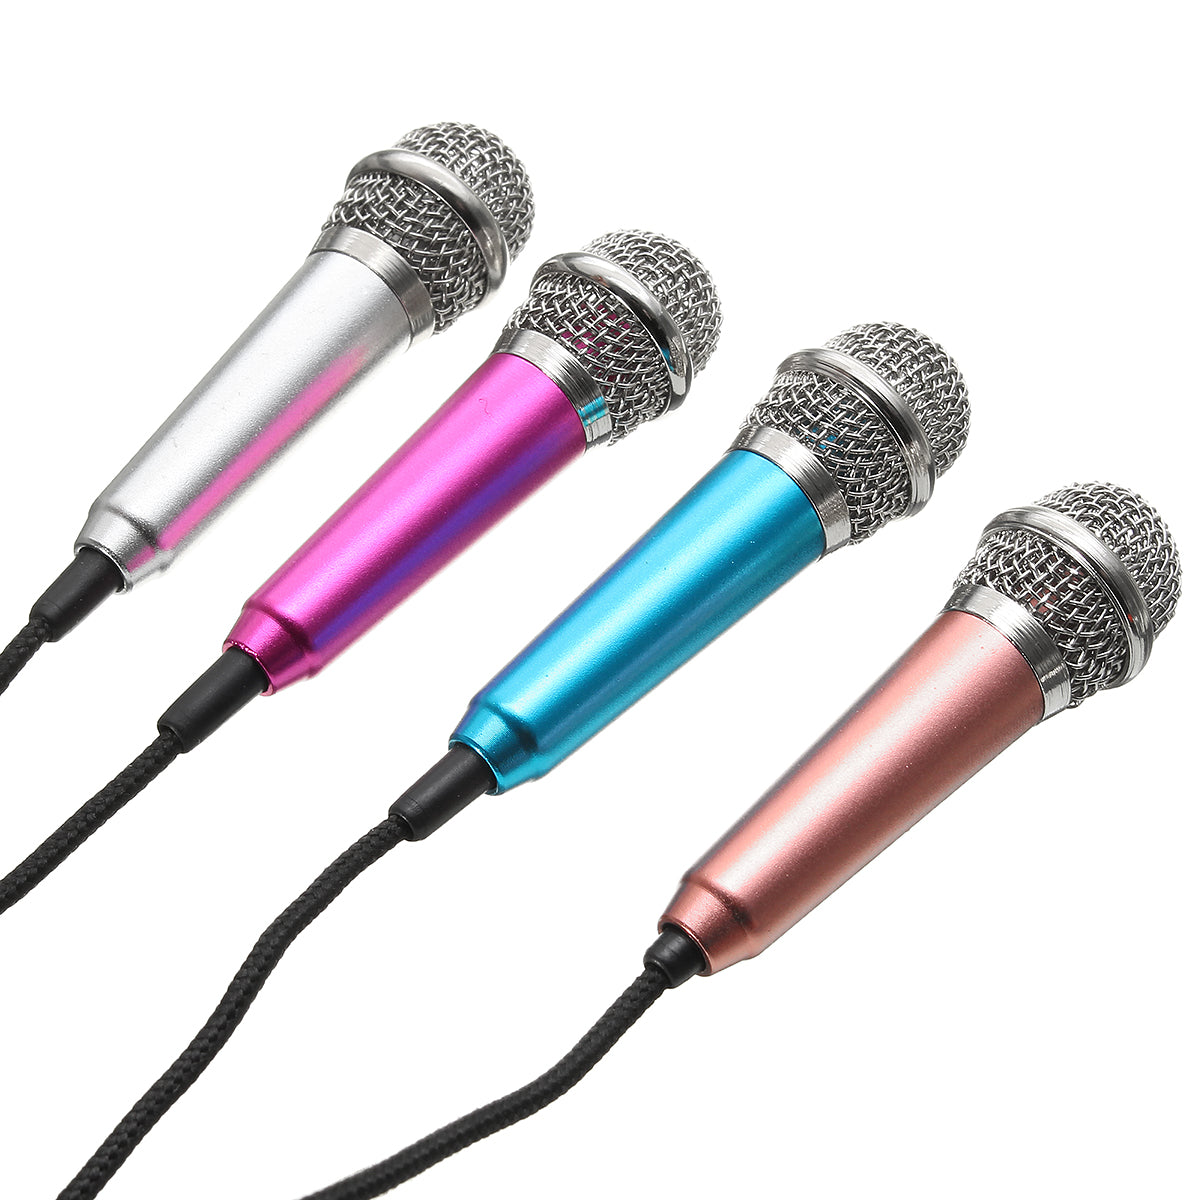 3.5mm Mini Stereo Studio Speech Microphone Mic For MSN iPhone Laptop PC Skype